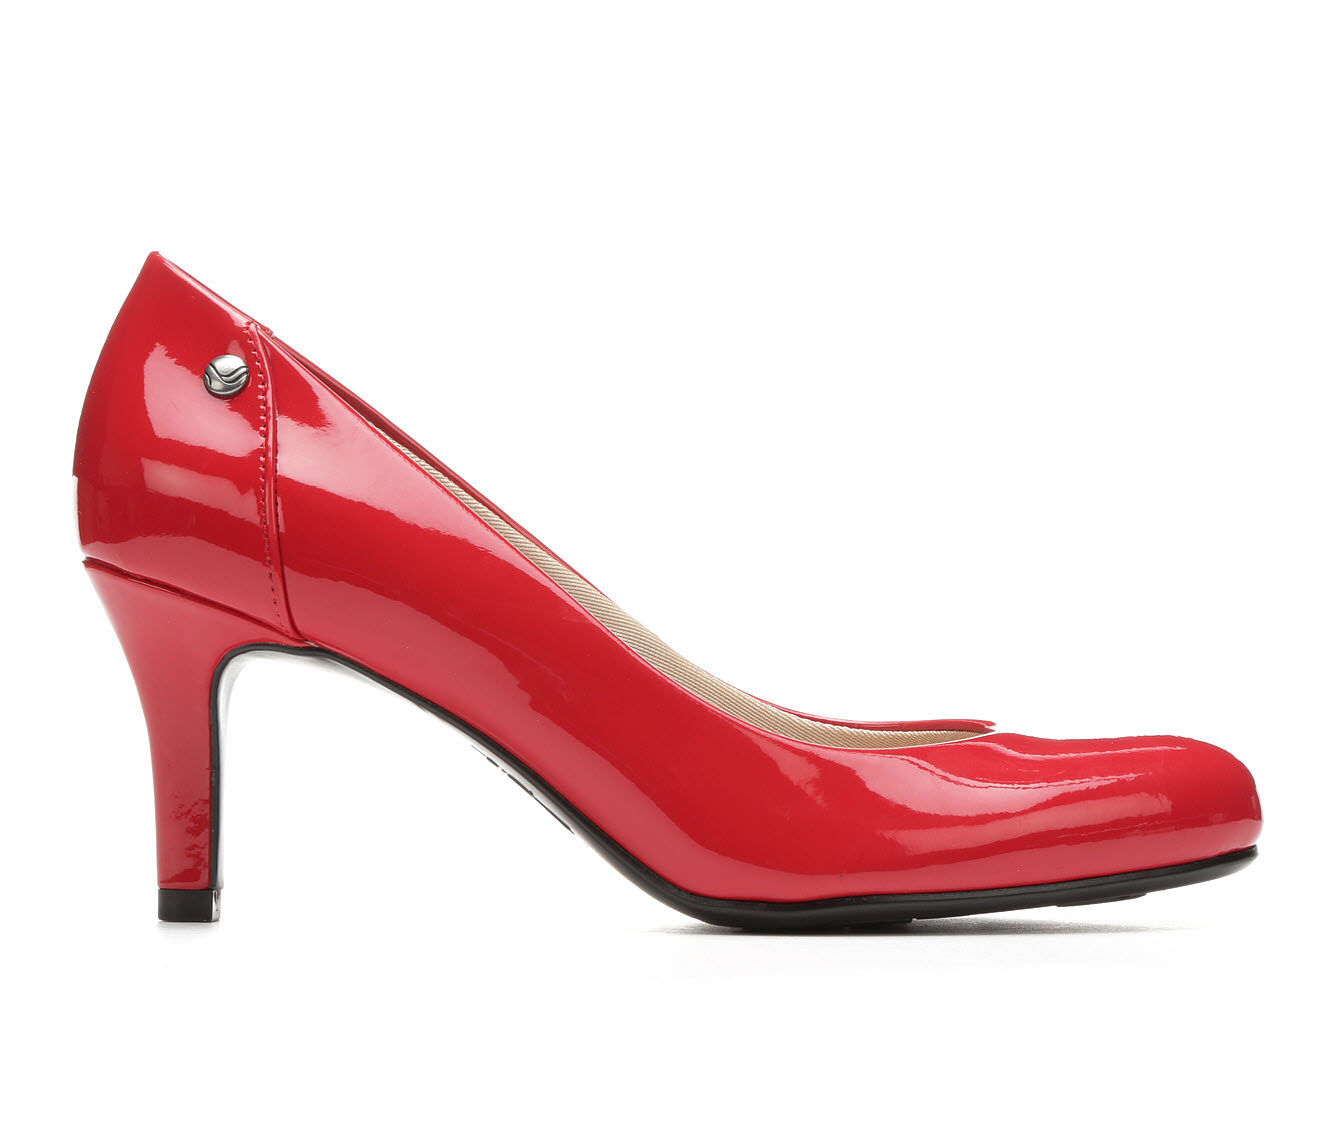 Affordable Women's LifeStride Lively Pumps Red Patent